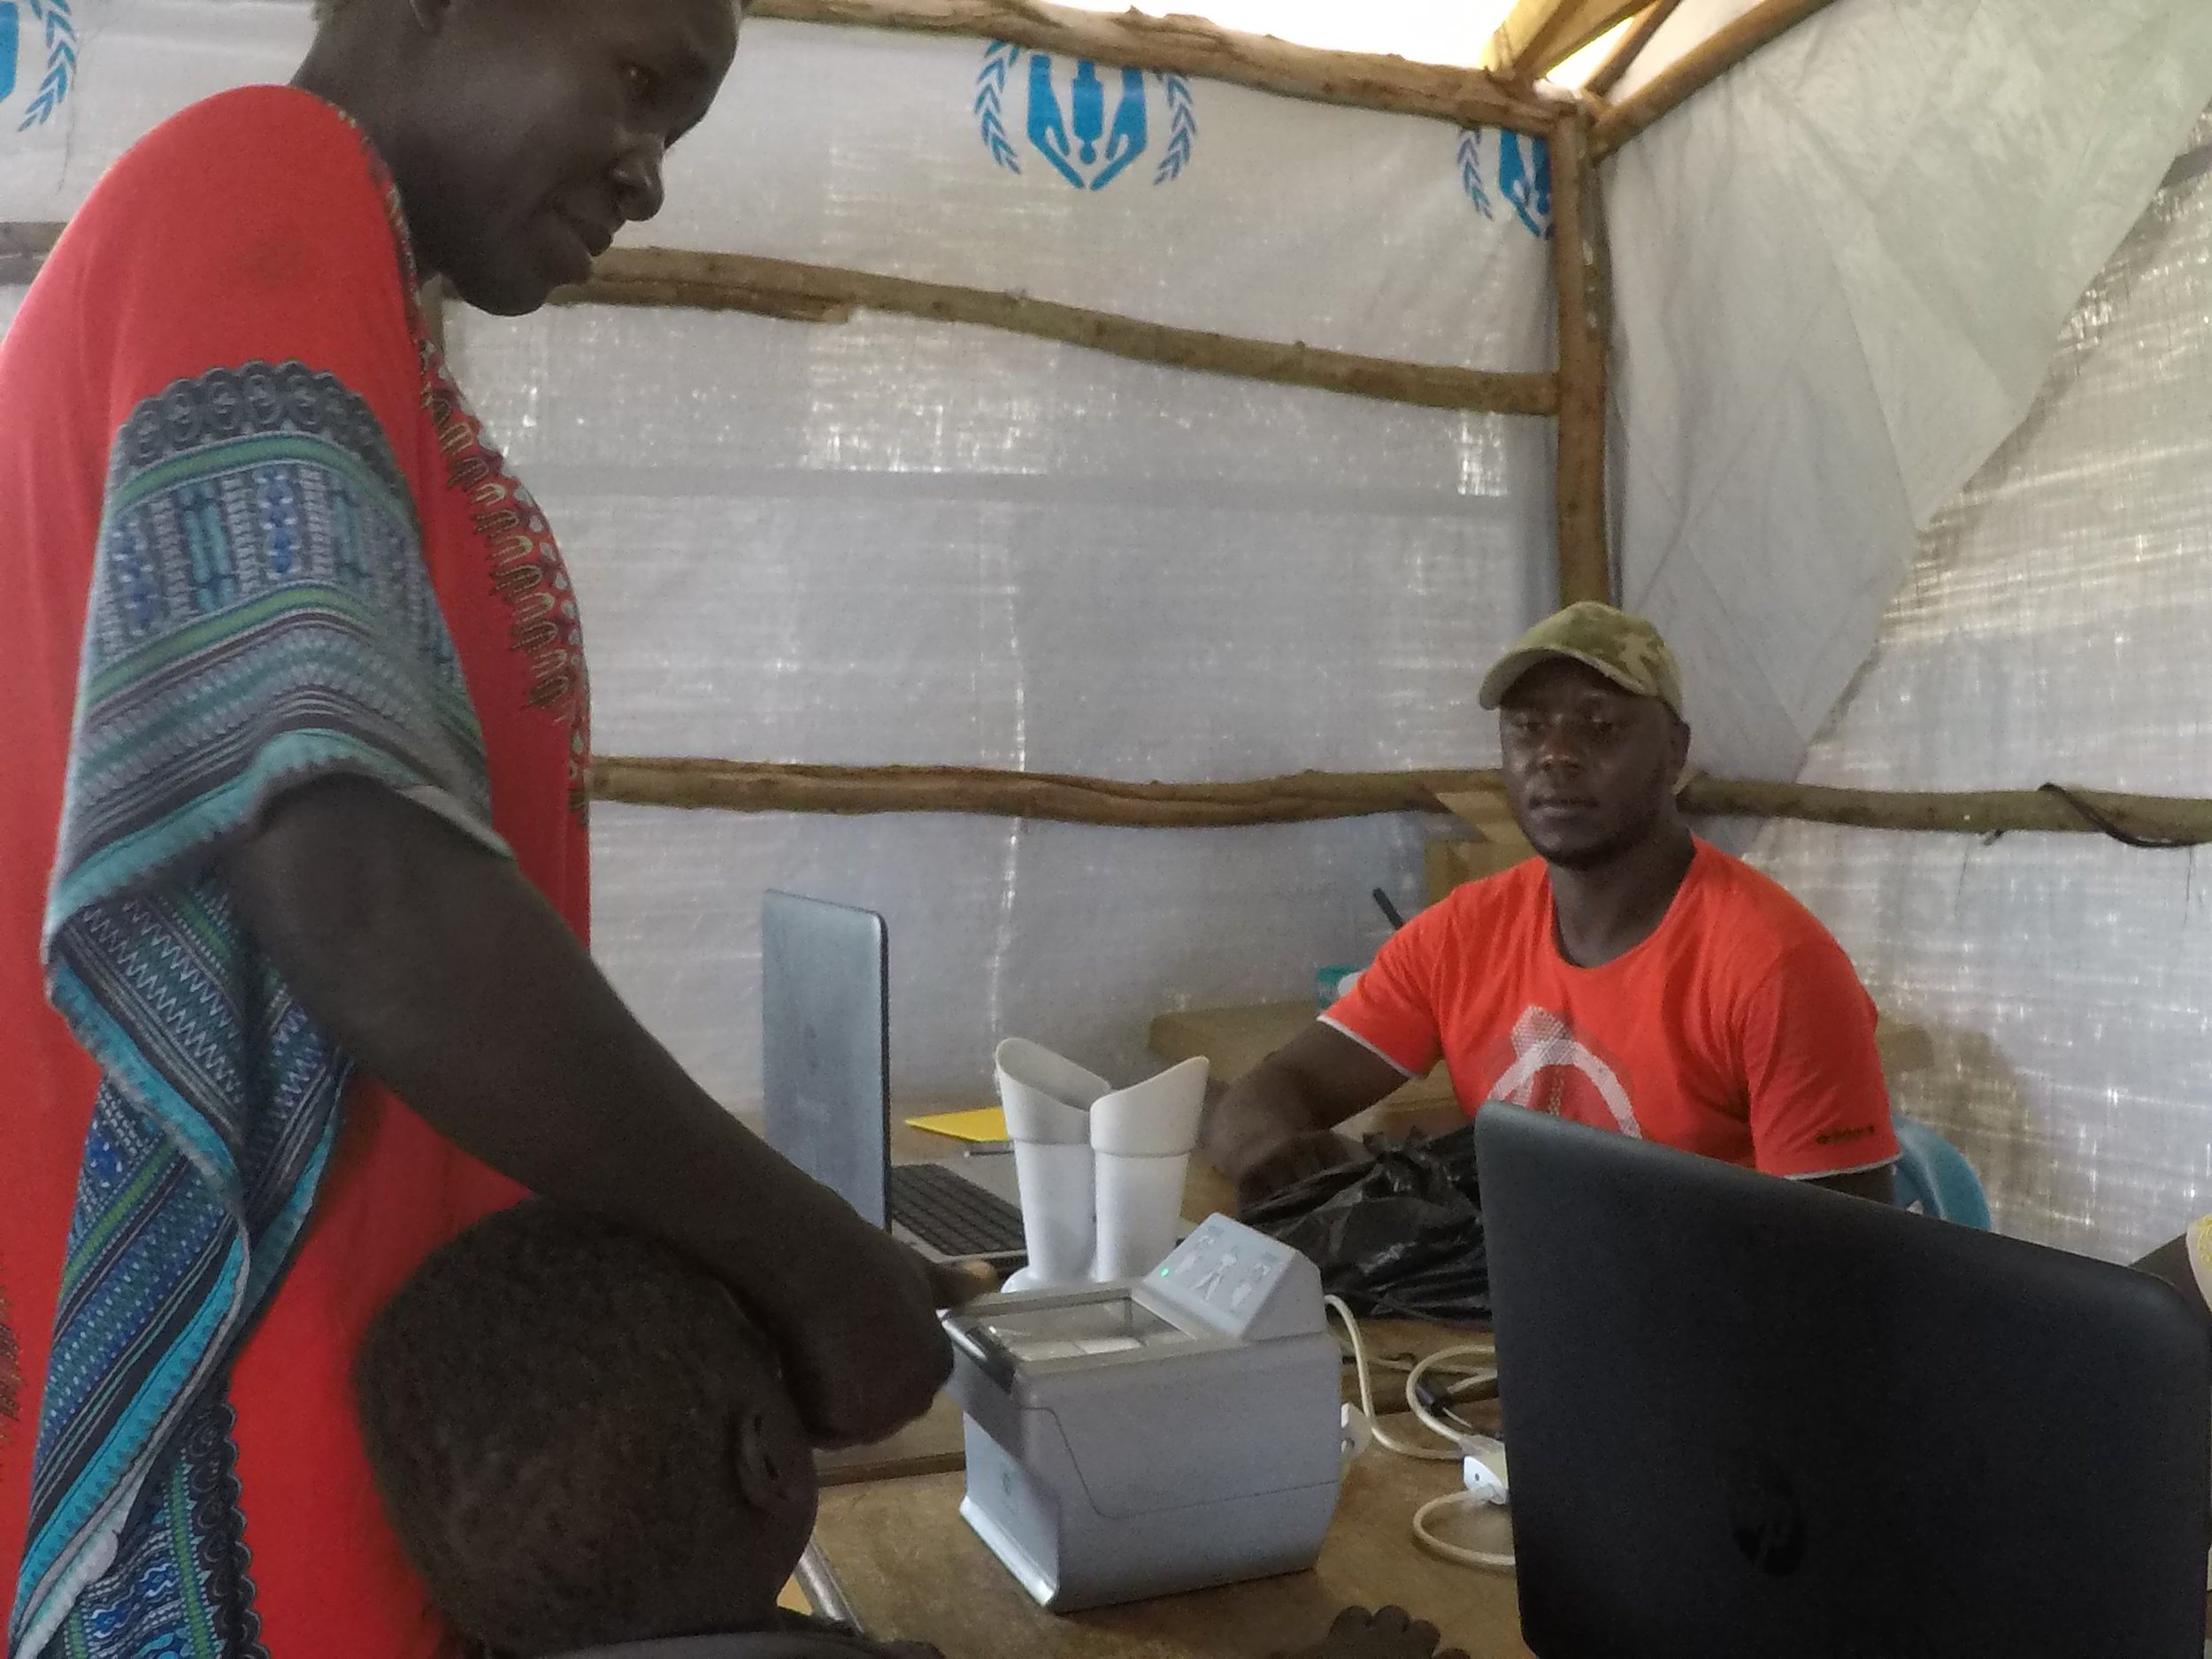 Biometric screening at the collection point to see if someone has already been registered as a refugee.